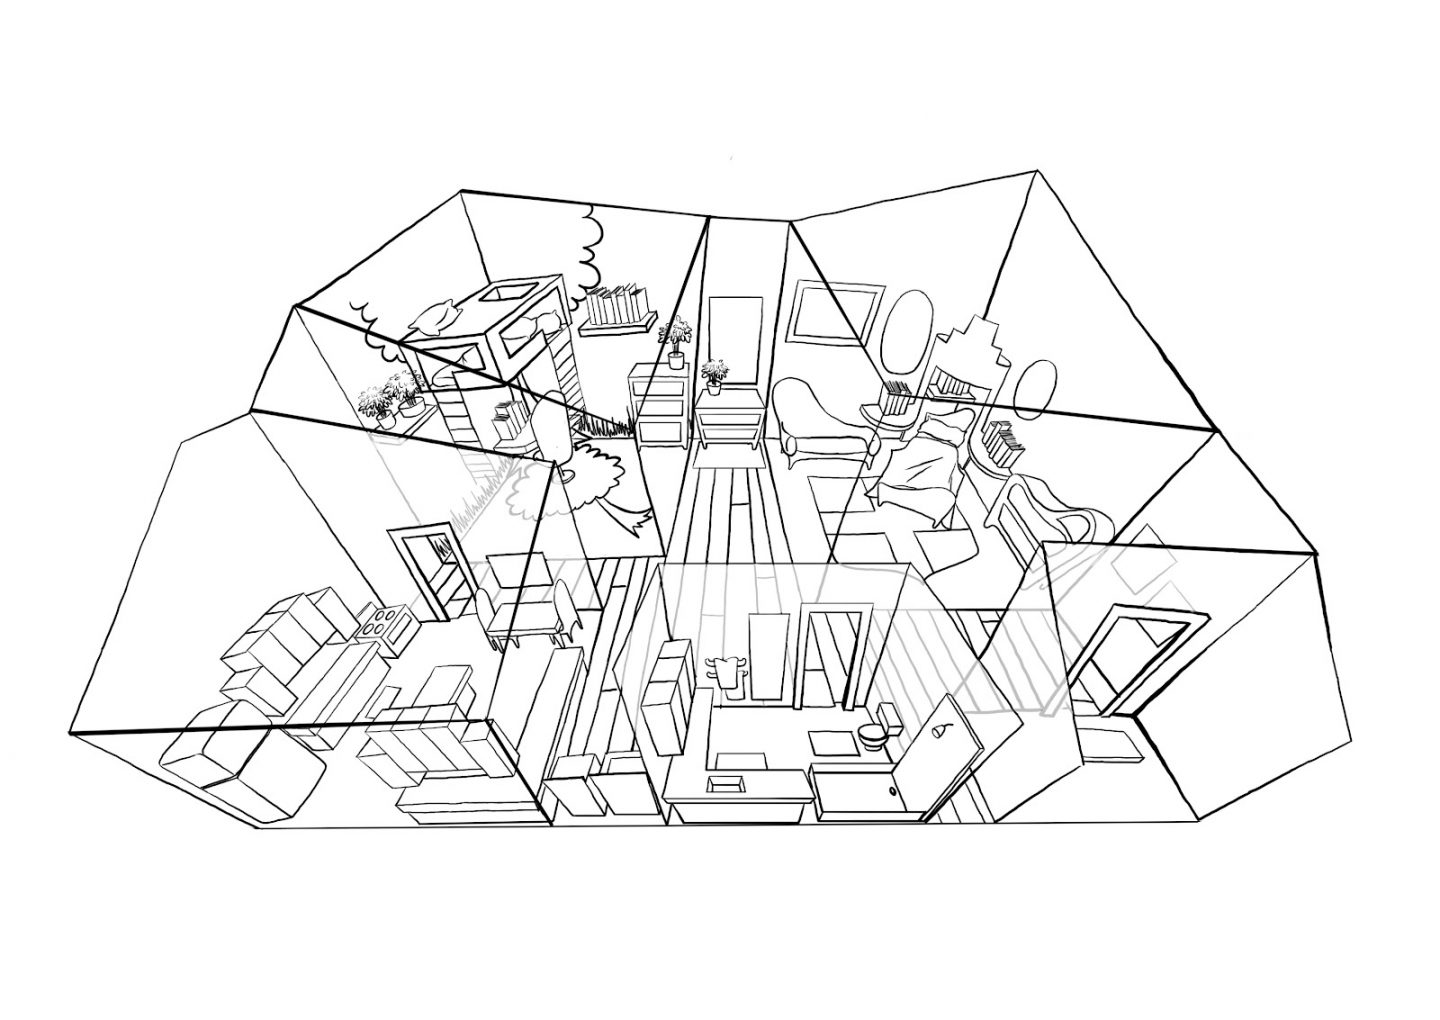 1440x1020 Virginia Duran Blog Treehouse O2 Drawing Treese Plans Home Depot